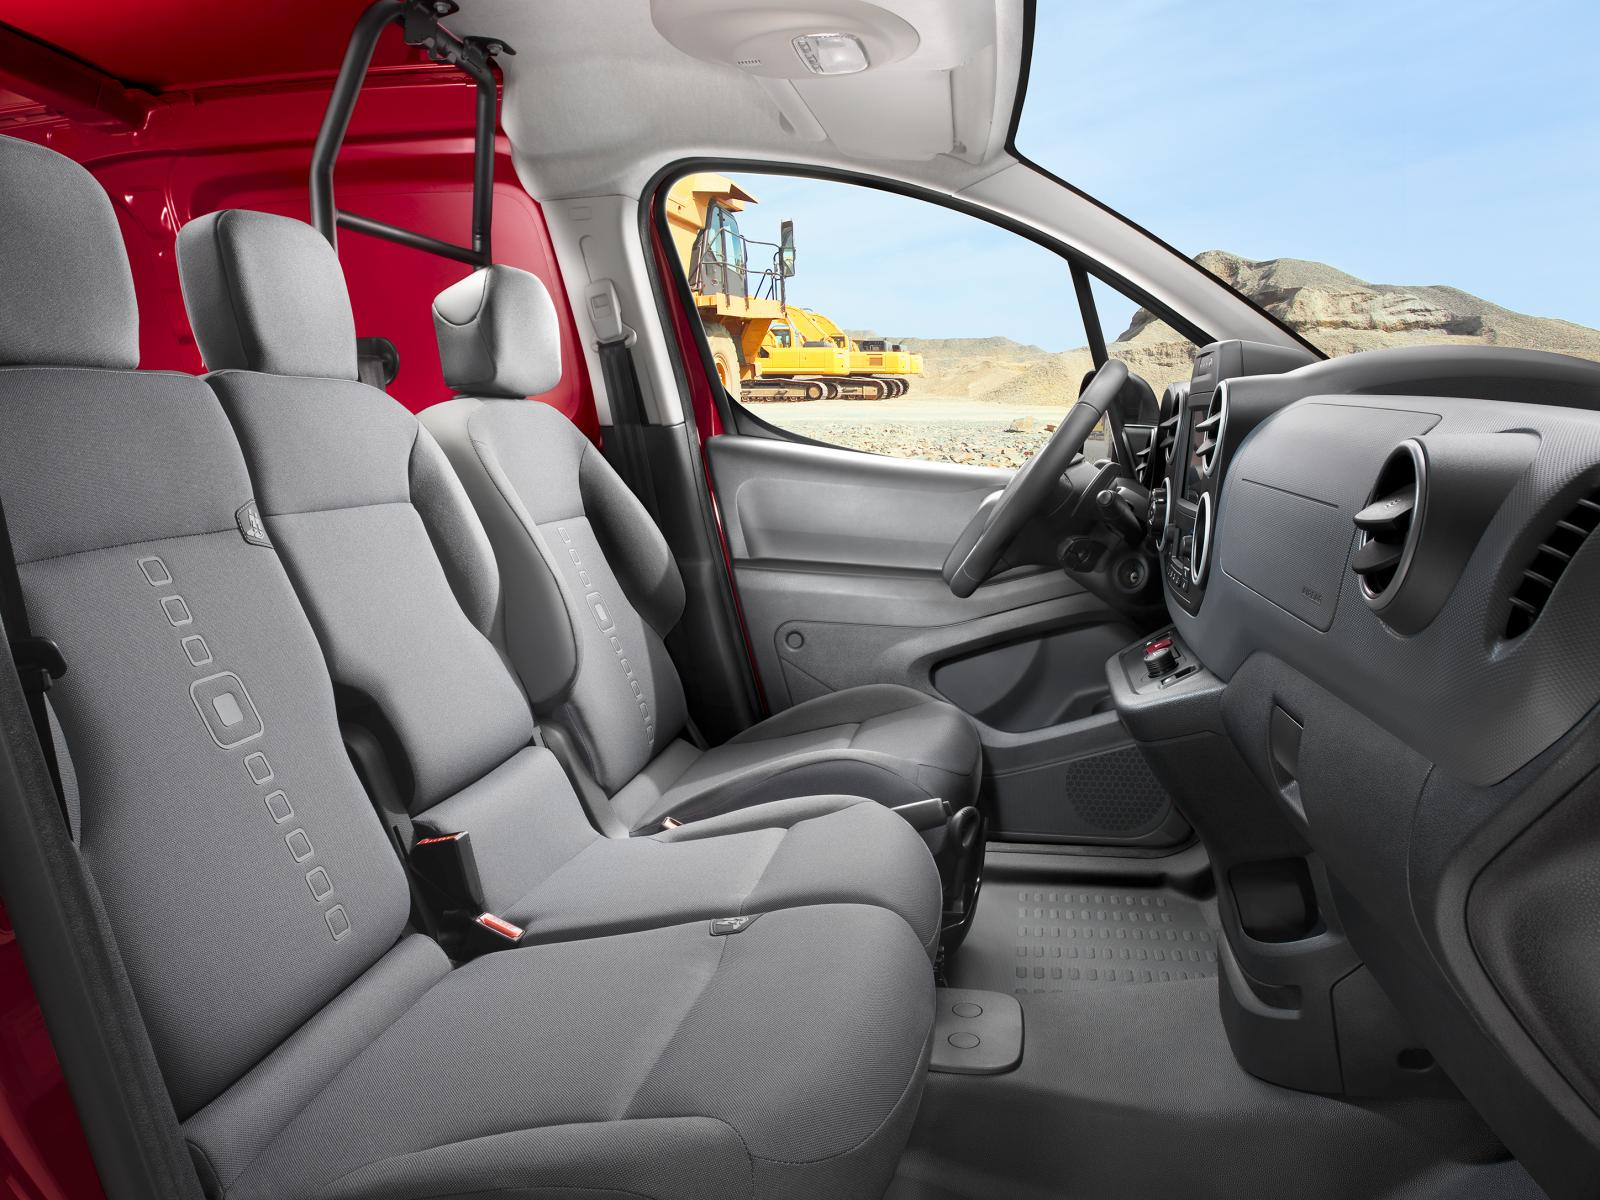 Inside Berlingo van 2016